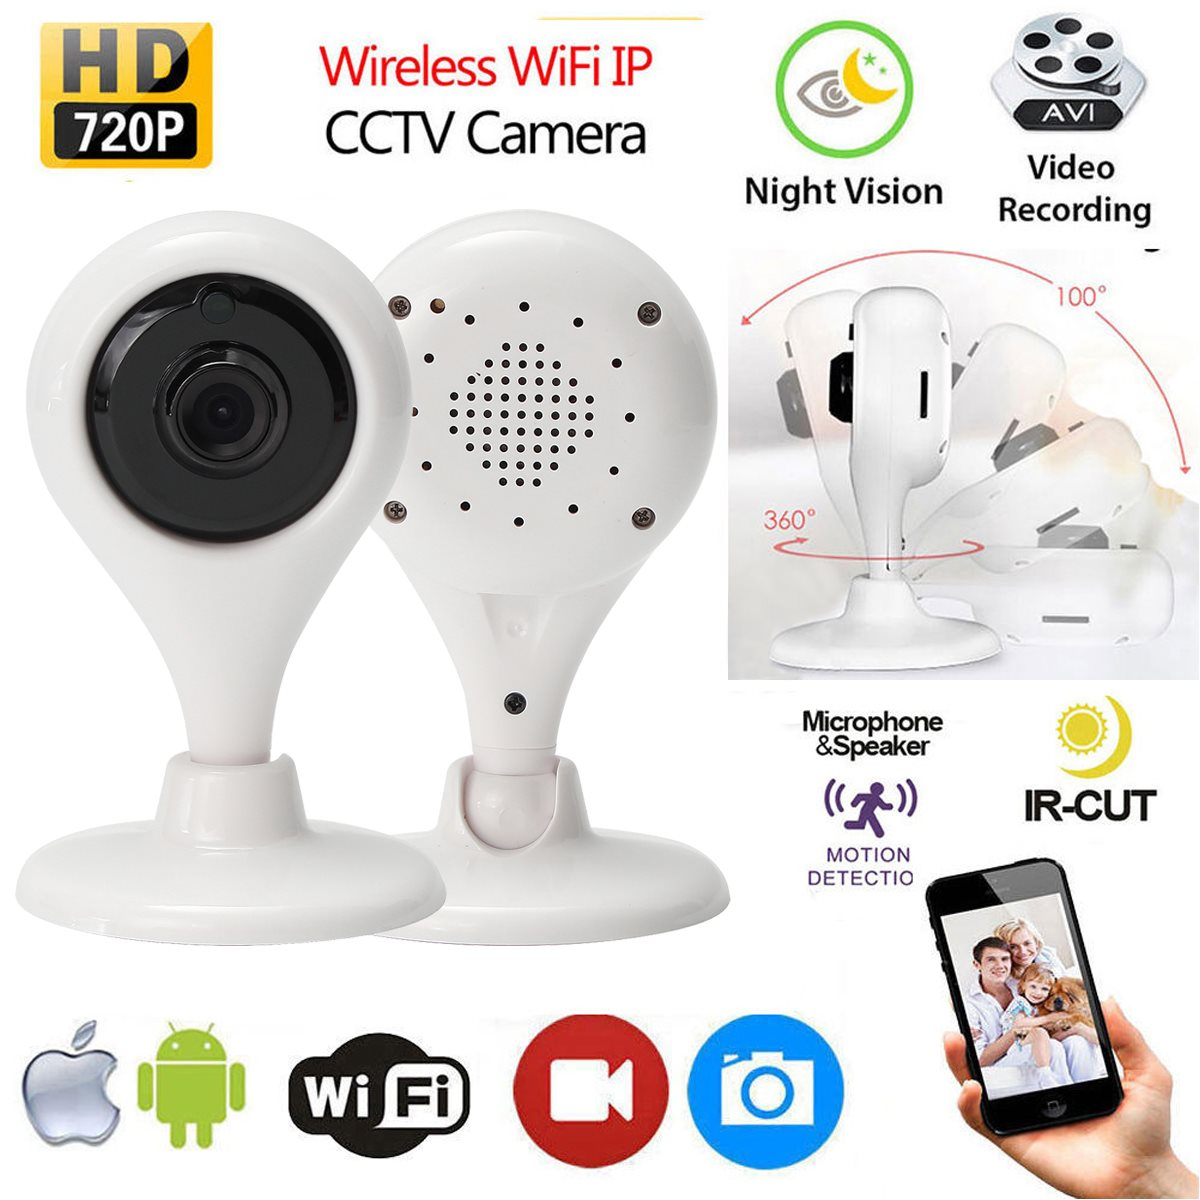 NEW HD 720P Smart Wireless Remote WIFI IP CCTV Camera Outdoor Security Network Night Vision  Surveillance Camera Baby Montors bc 883m mirror bulb lamp camera hd 960p wifi ap hd 960p ip network camera with real light remote control 2017 new arrival